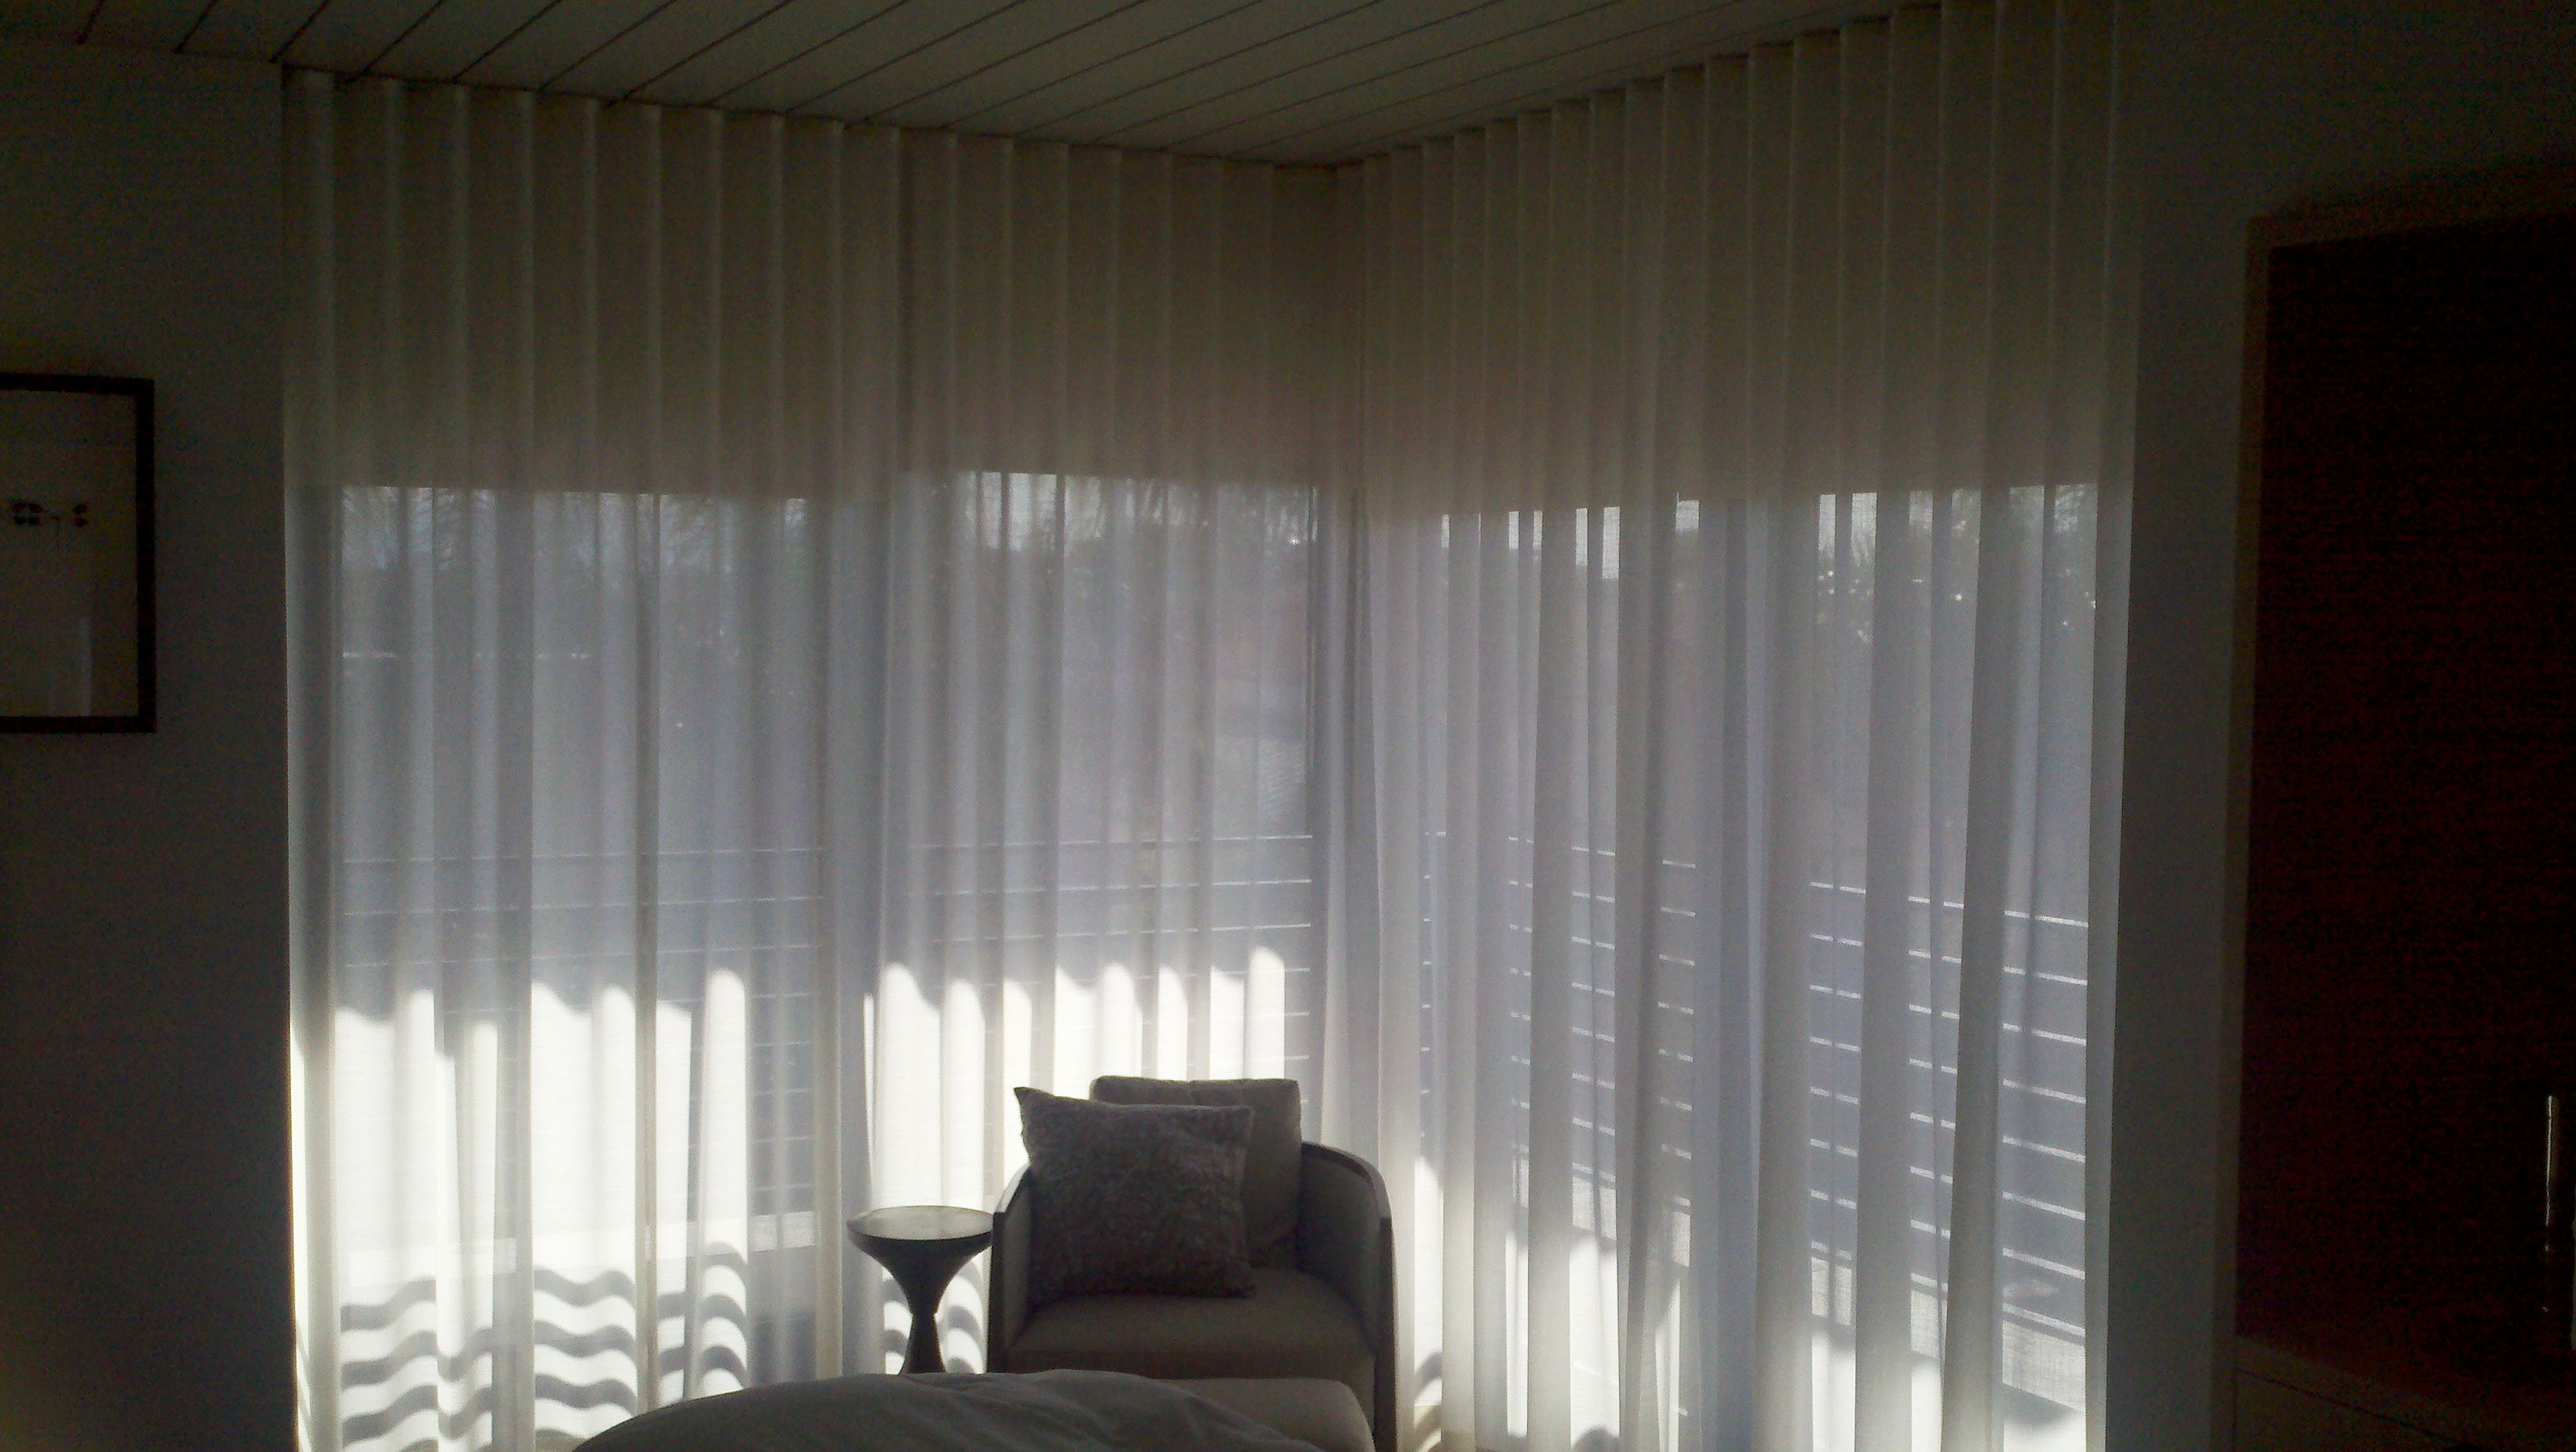 drapery hand youtube watch controlled by or electric curtain drapes motorized control remote